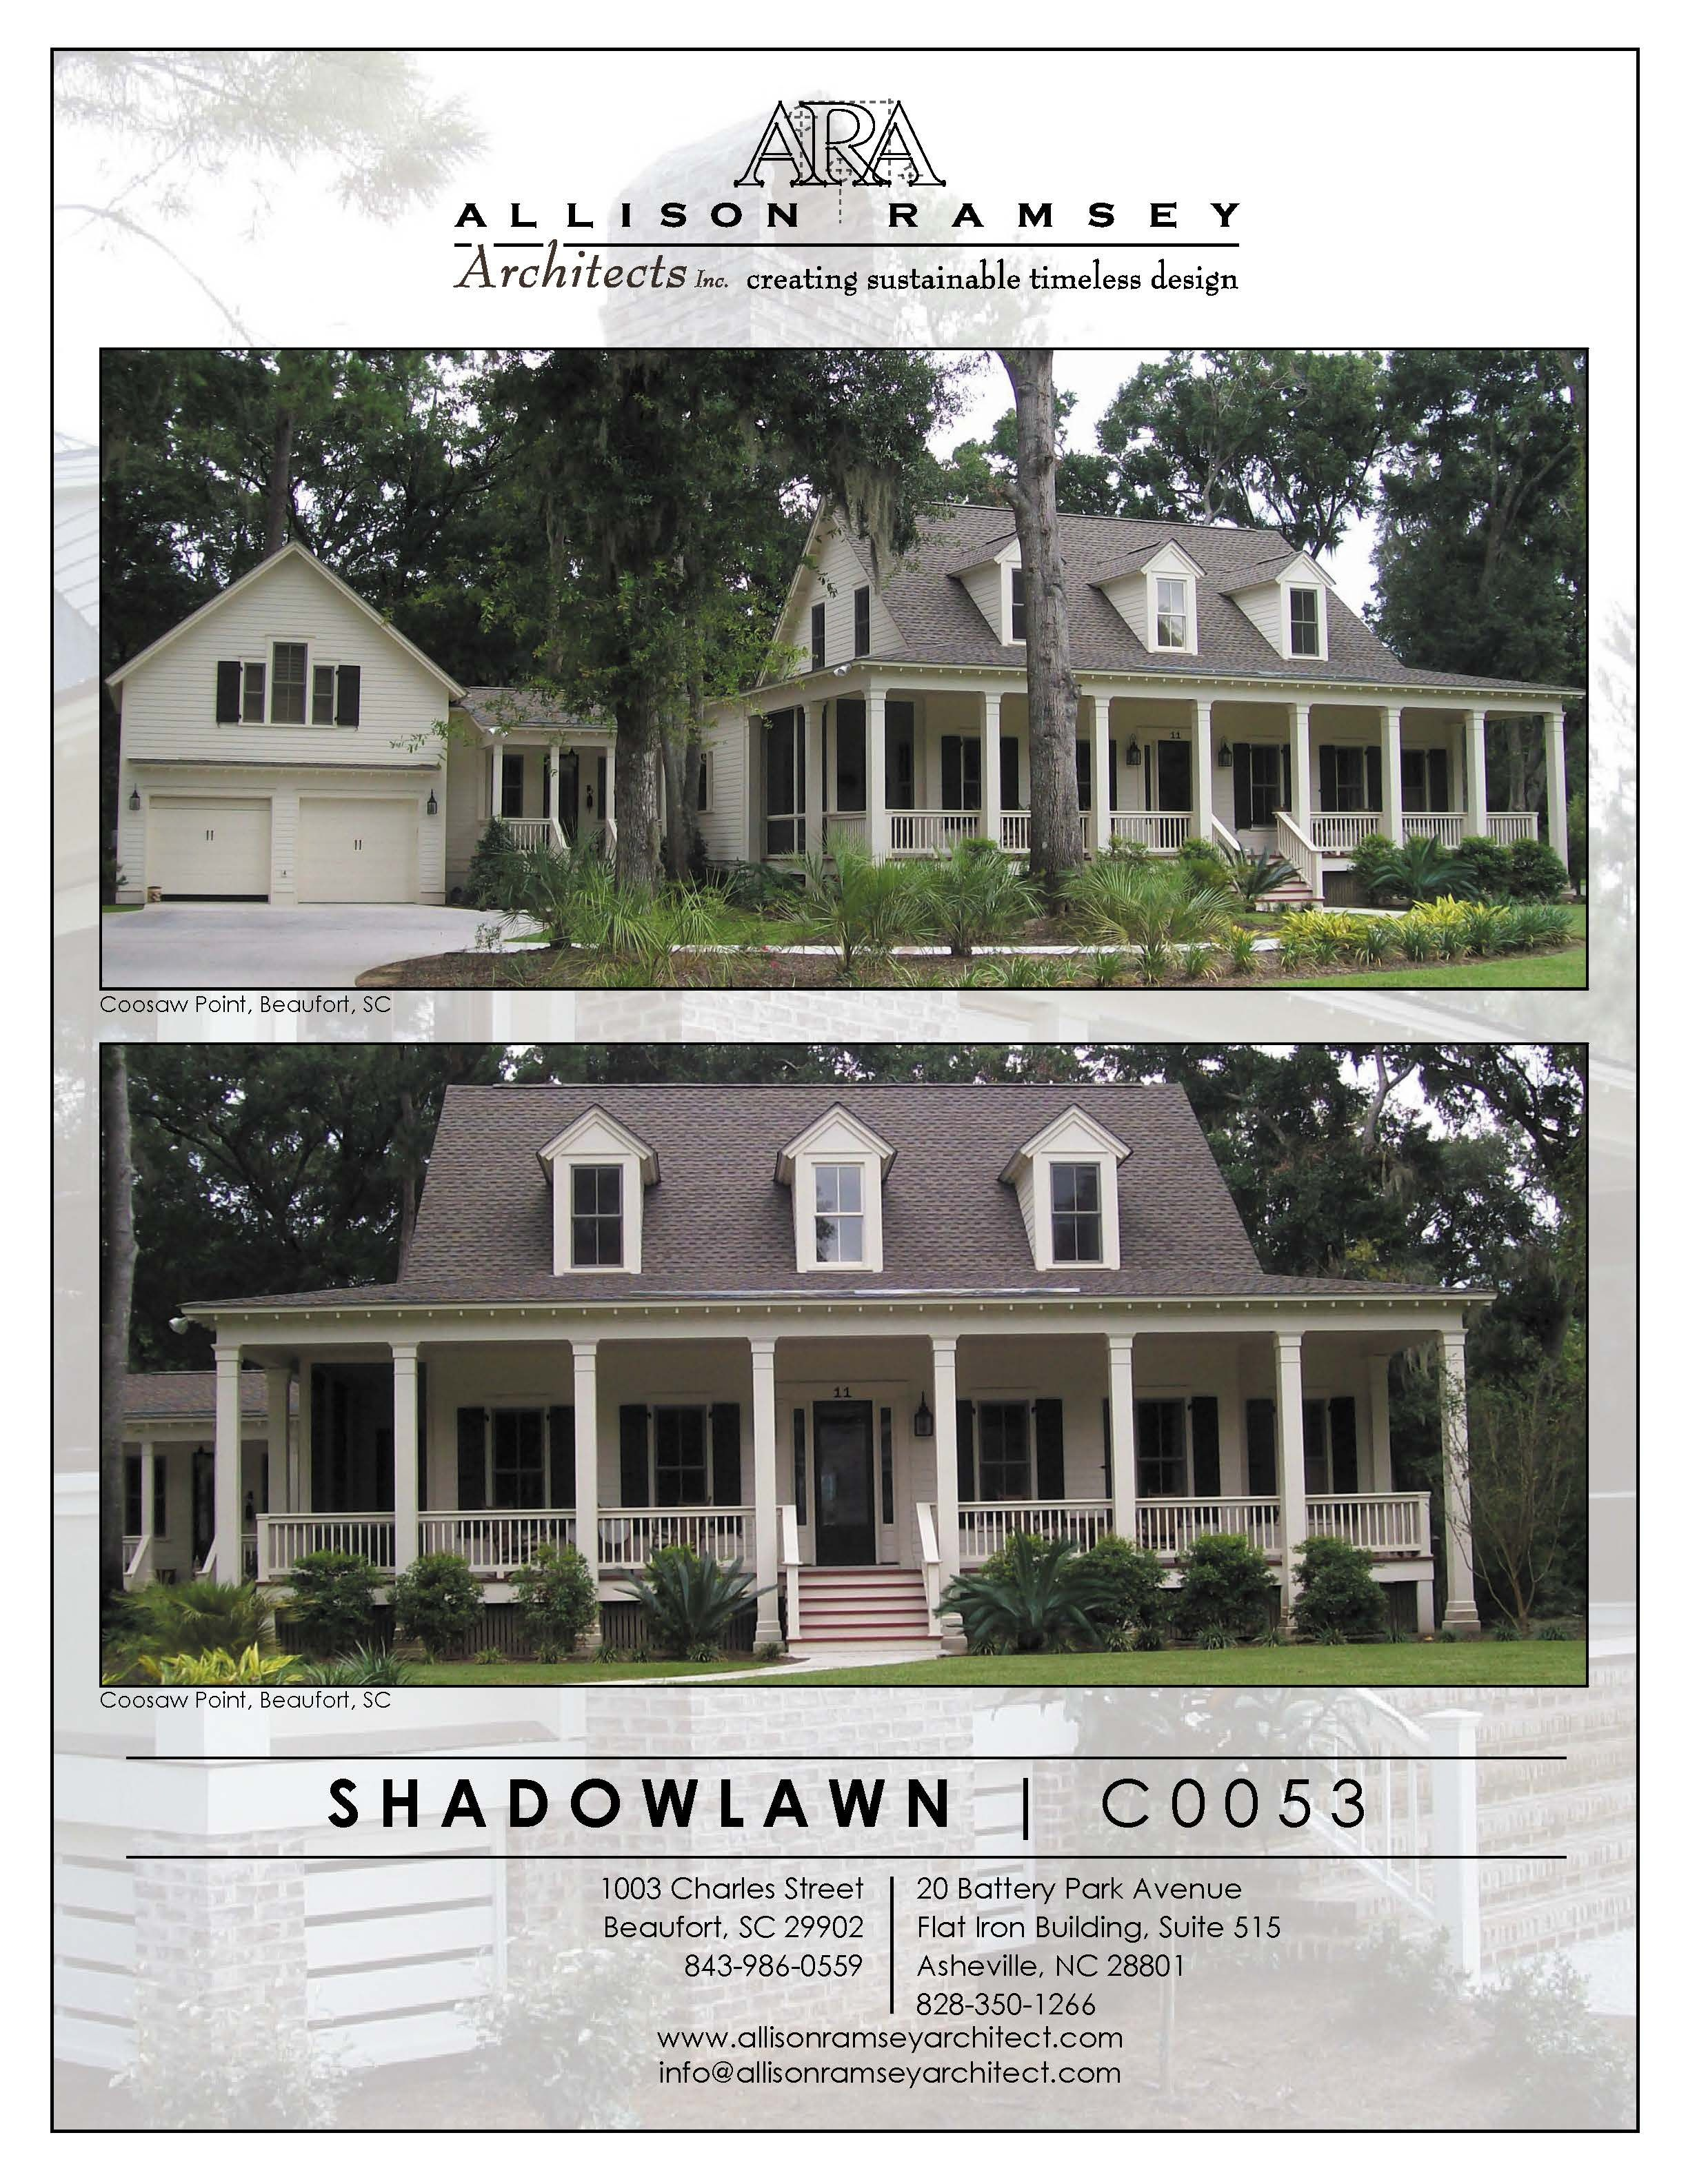 The Shadowlawn Project From Allison Ramsey Architects S Custom Homes Collection